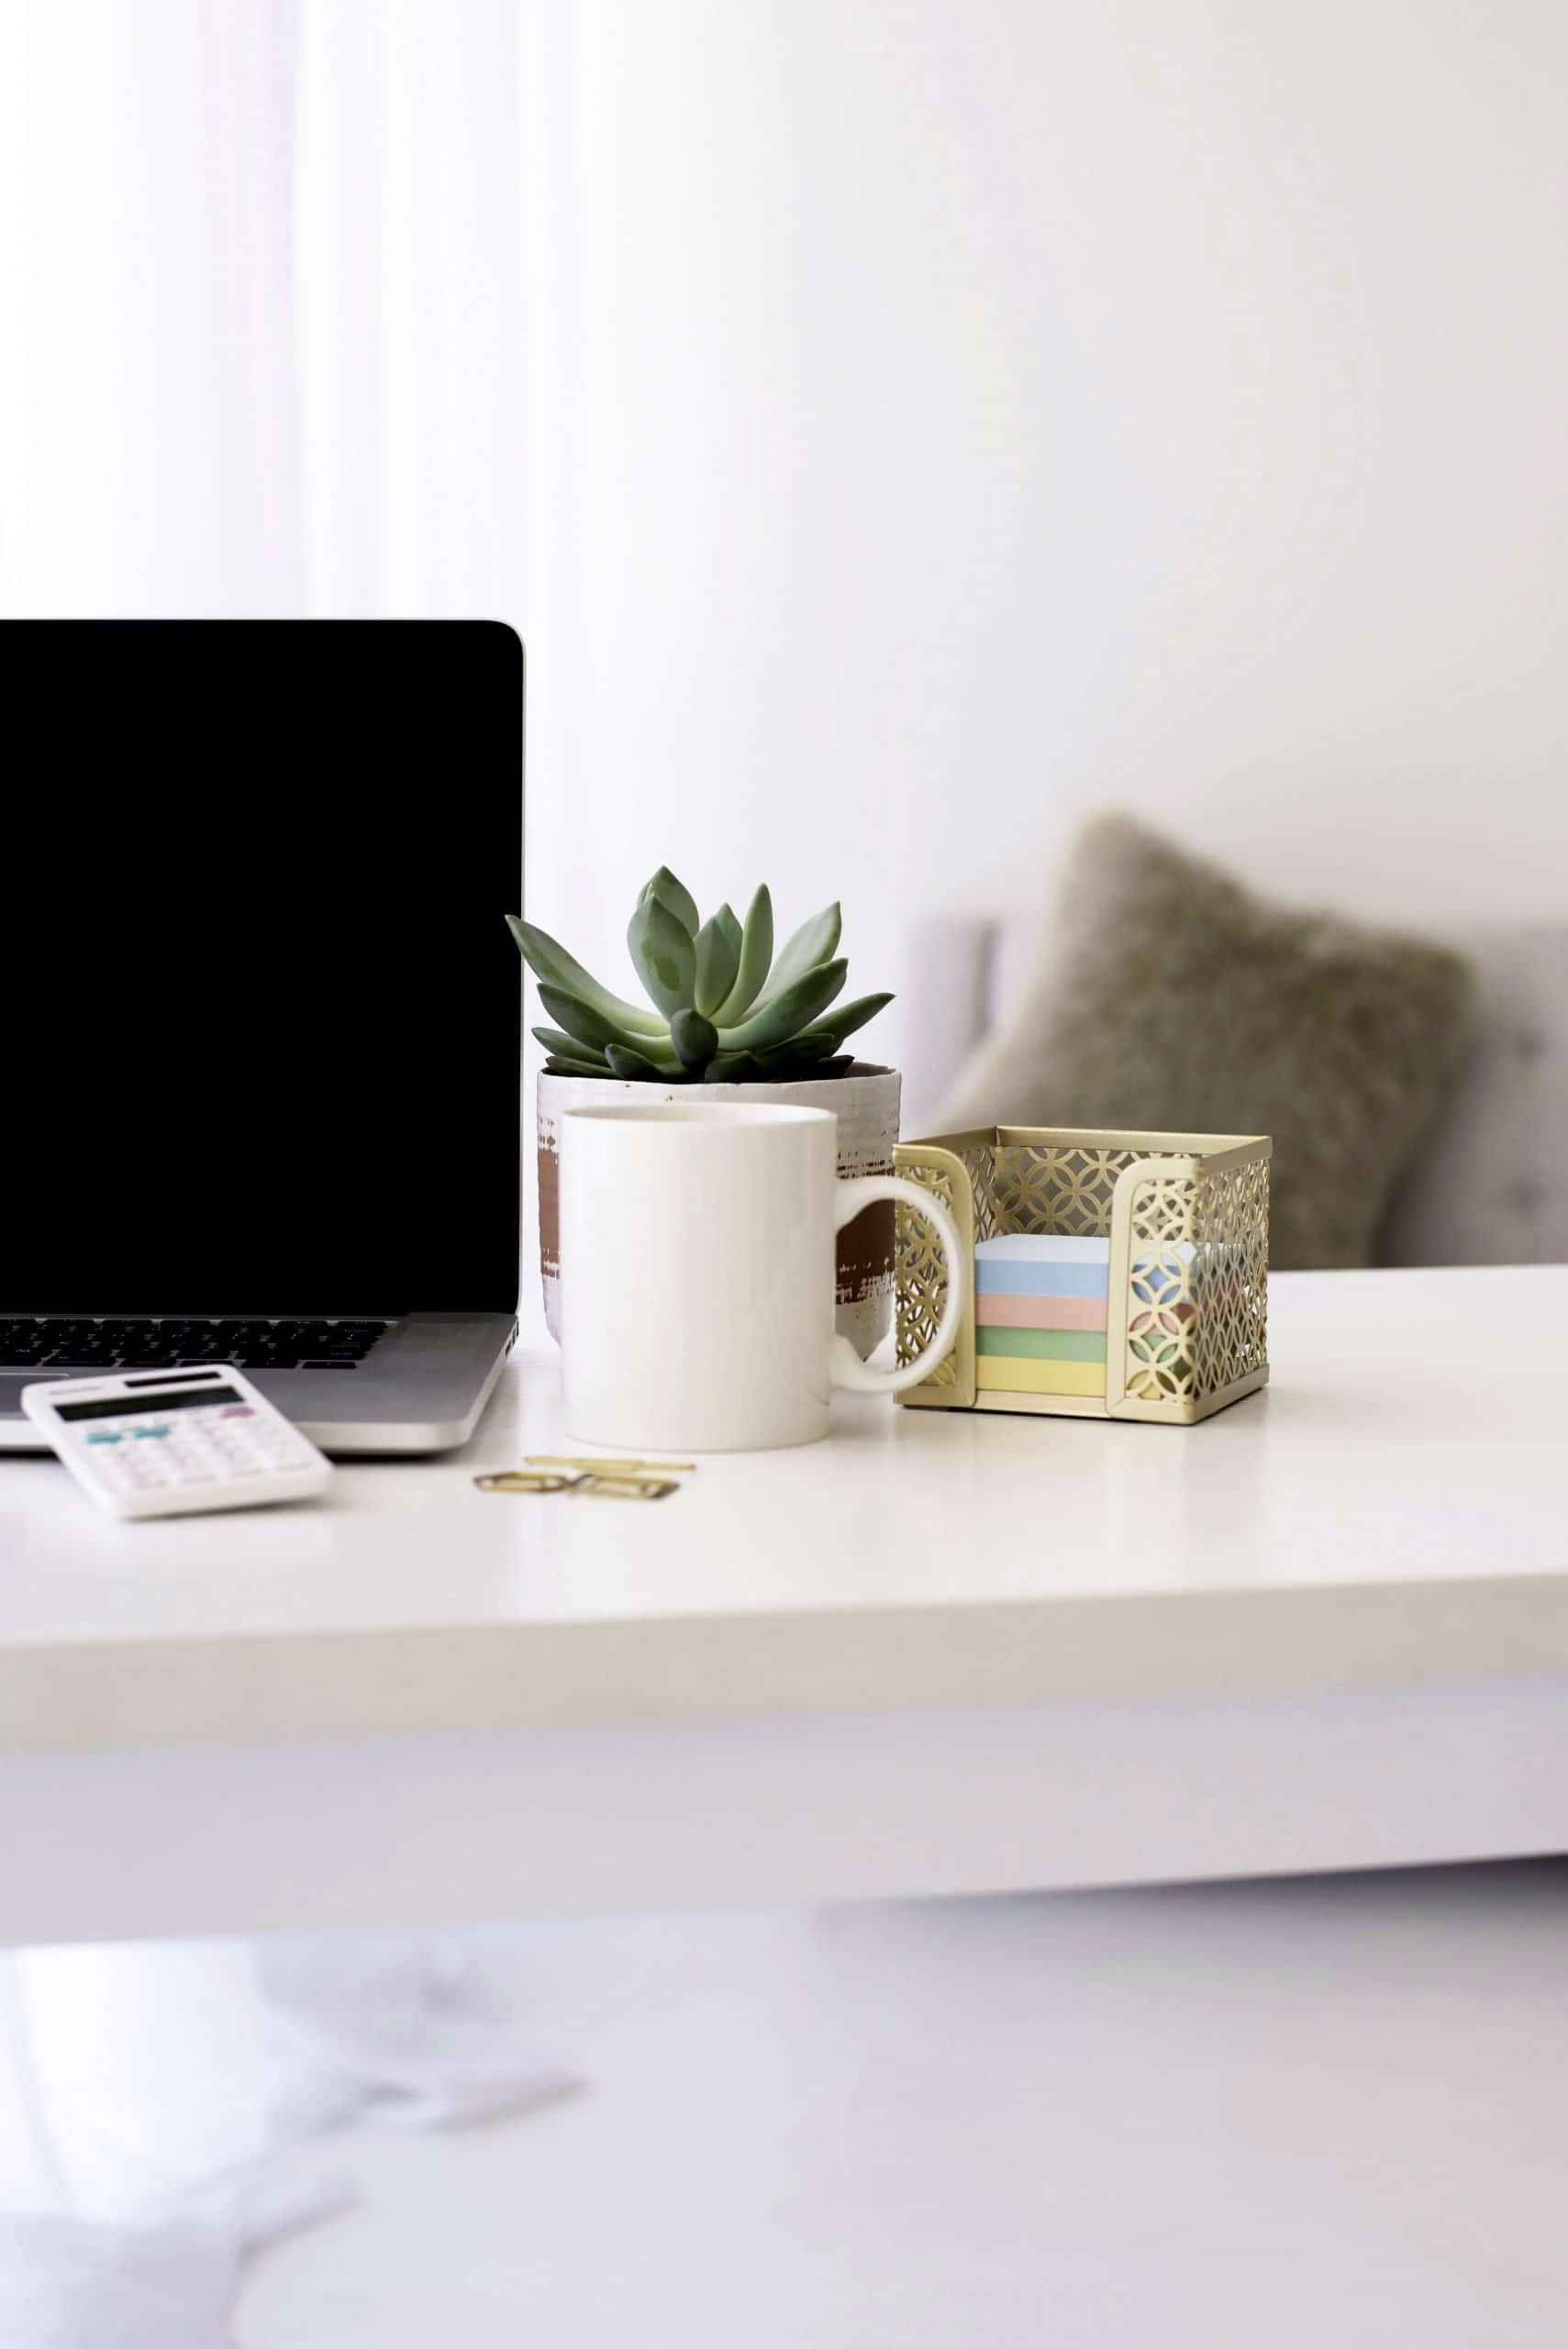 A desk with a laptop and decor